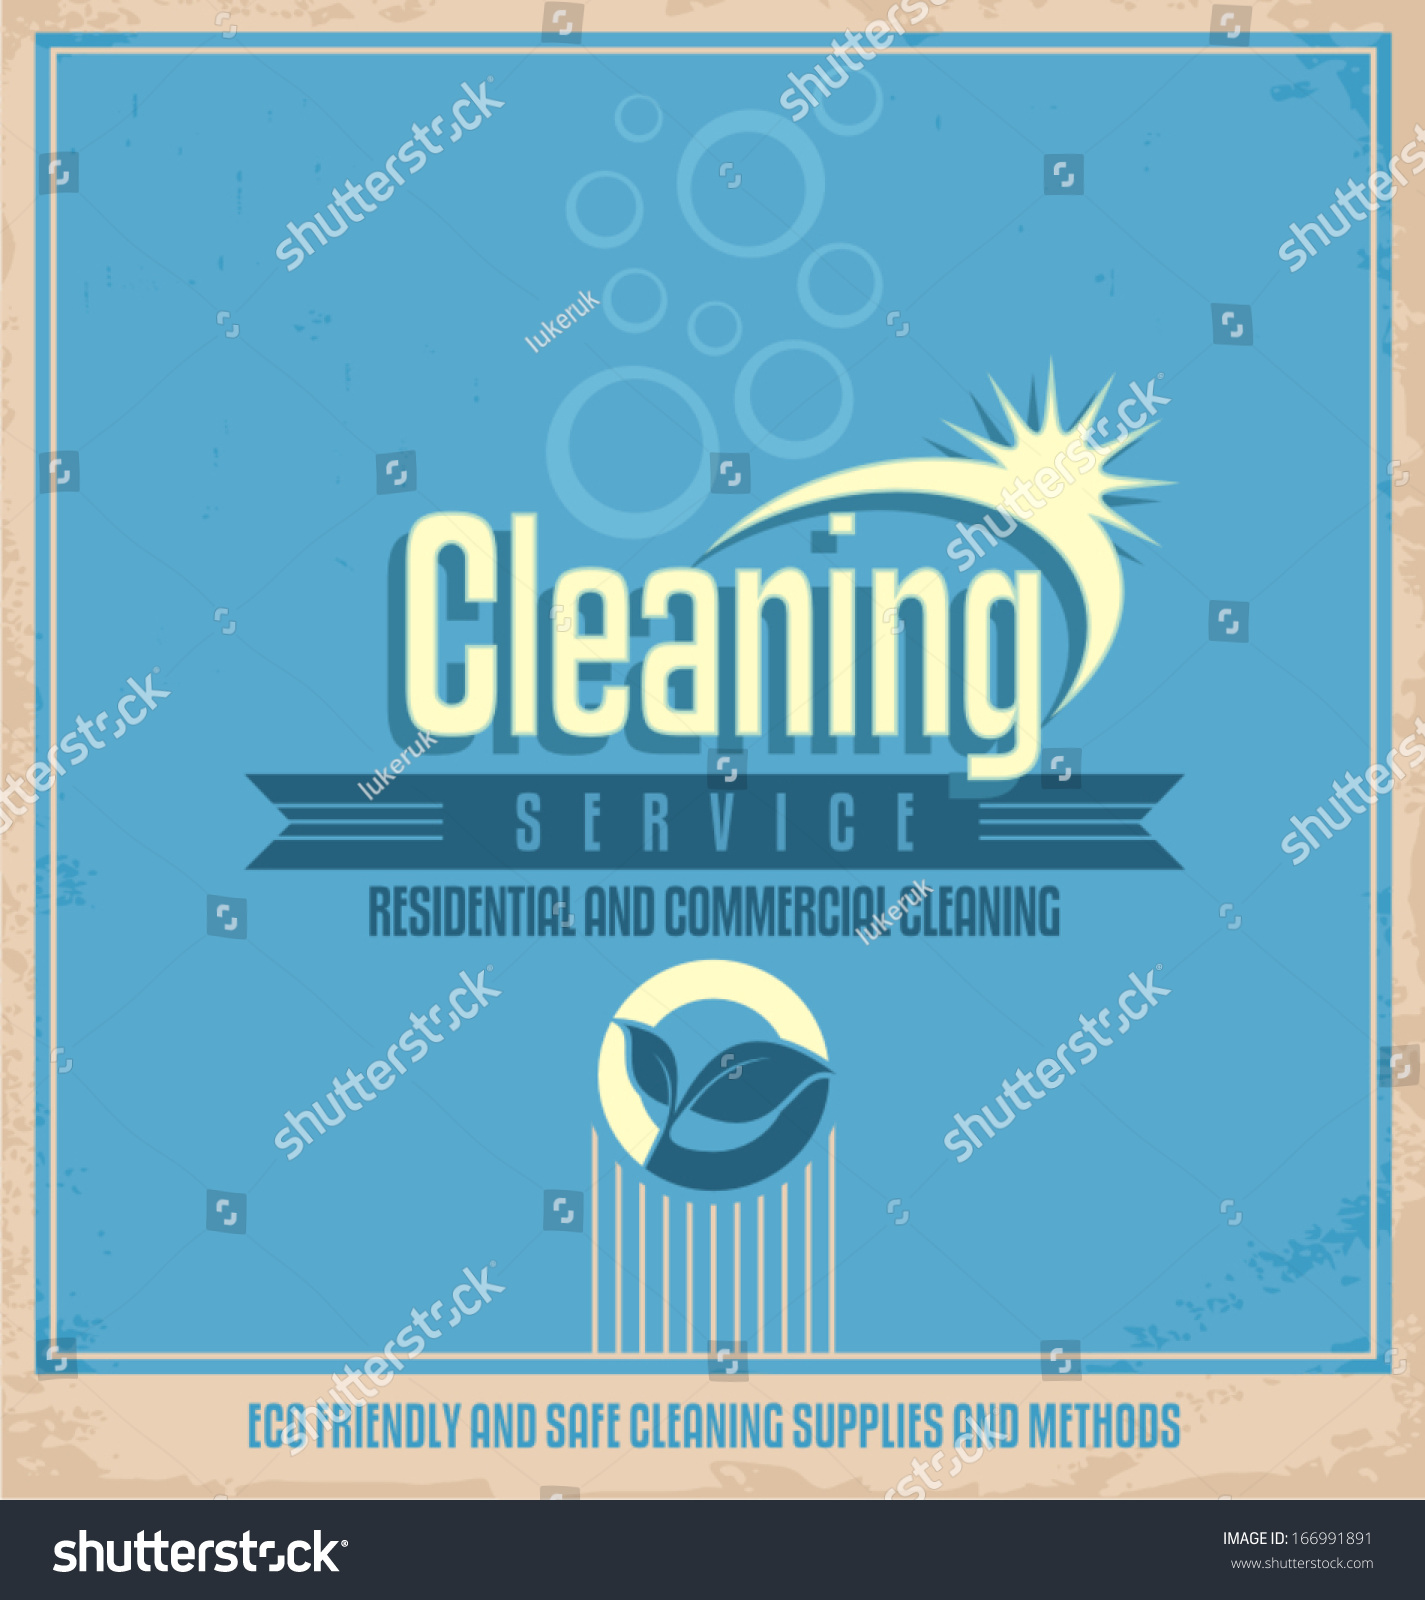 Poster design company - Retro Vector Poster Template For Professional Residential And Commercial Cleaning Service Company